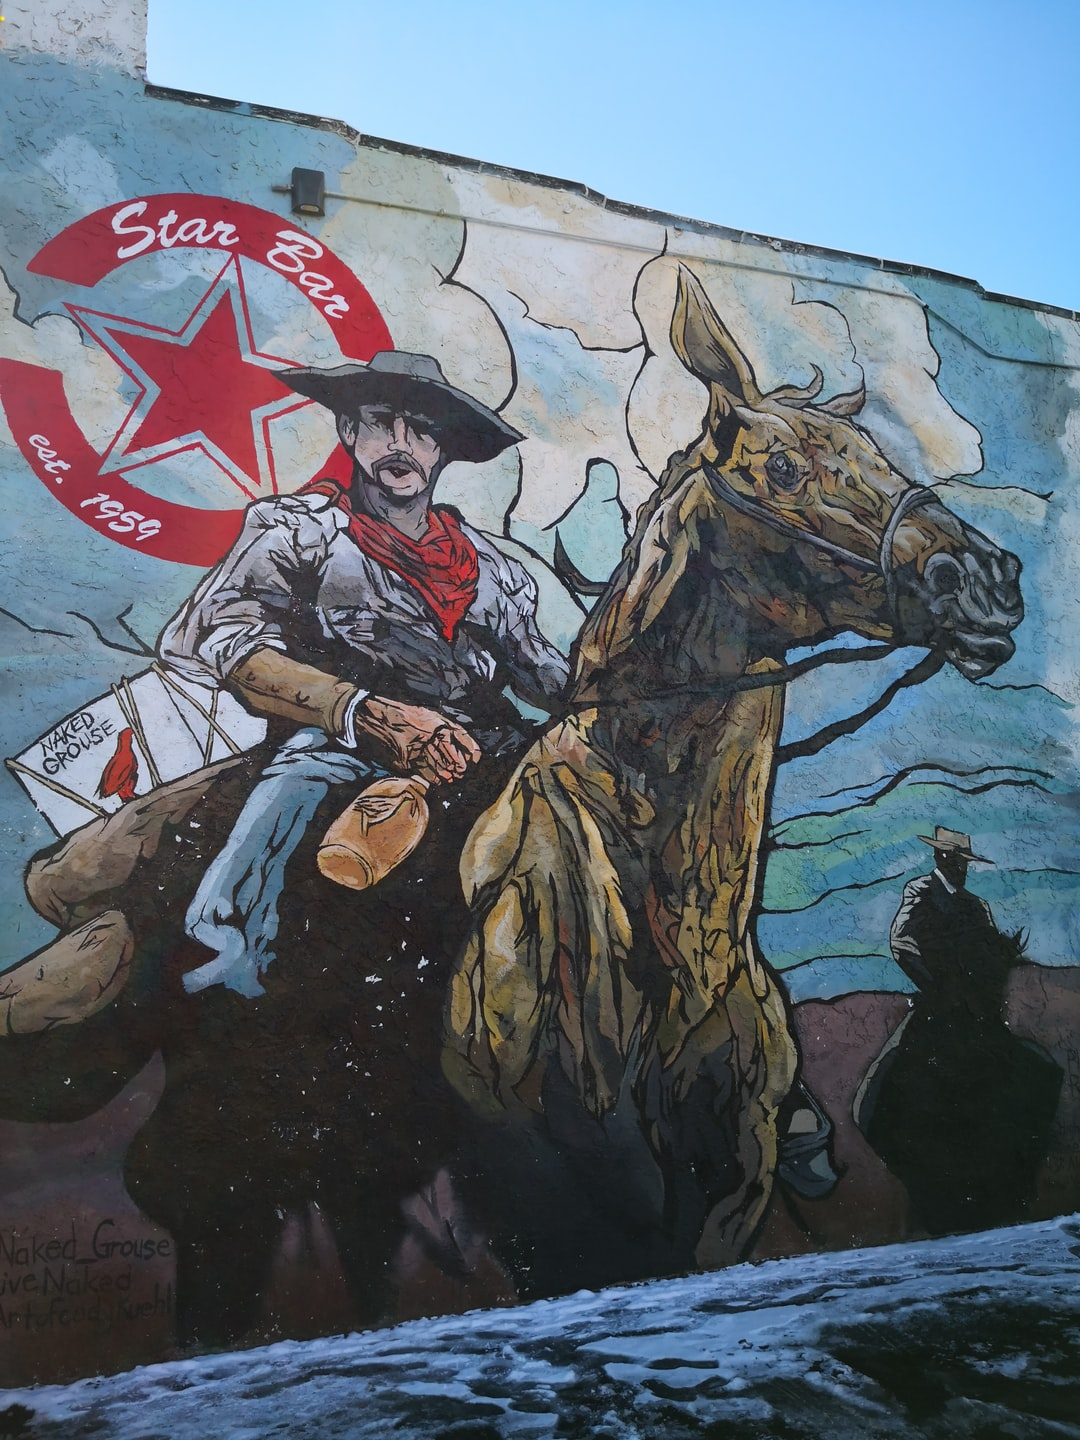 Wall painting in Denver.